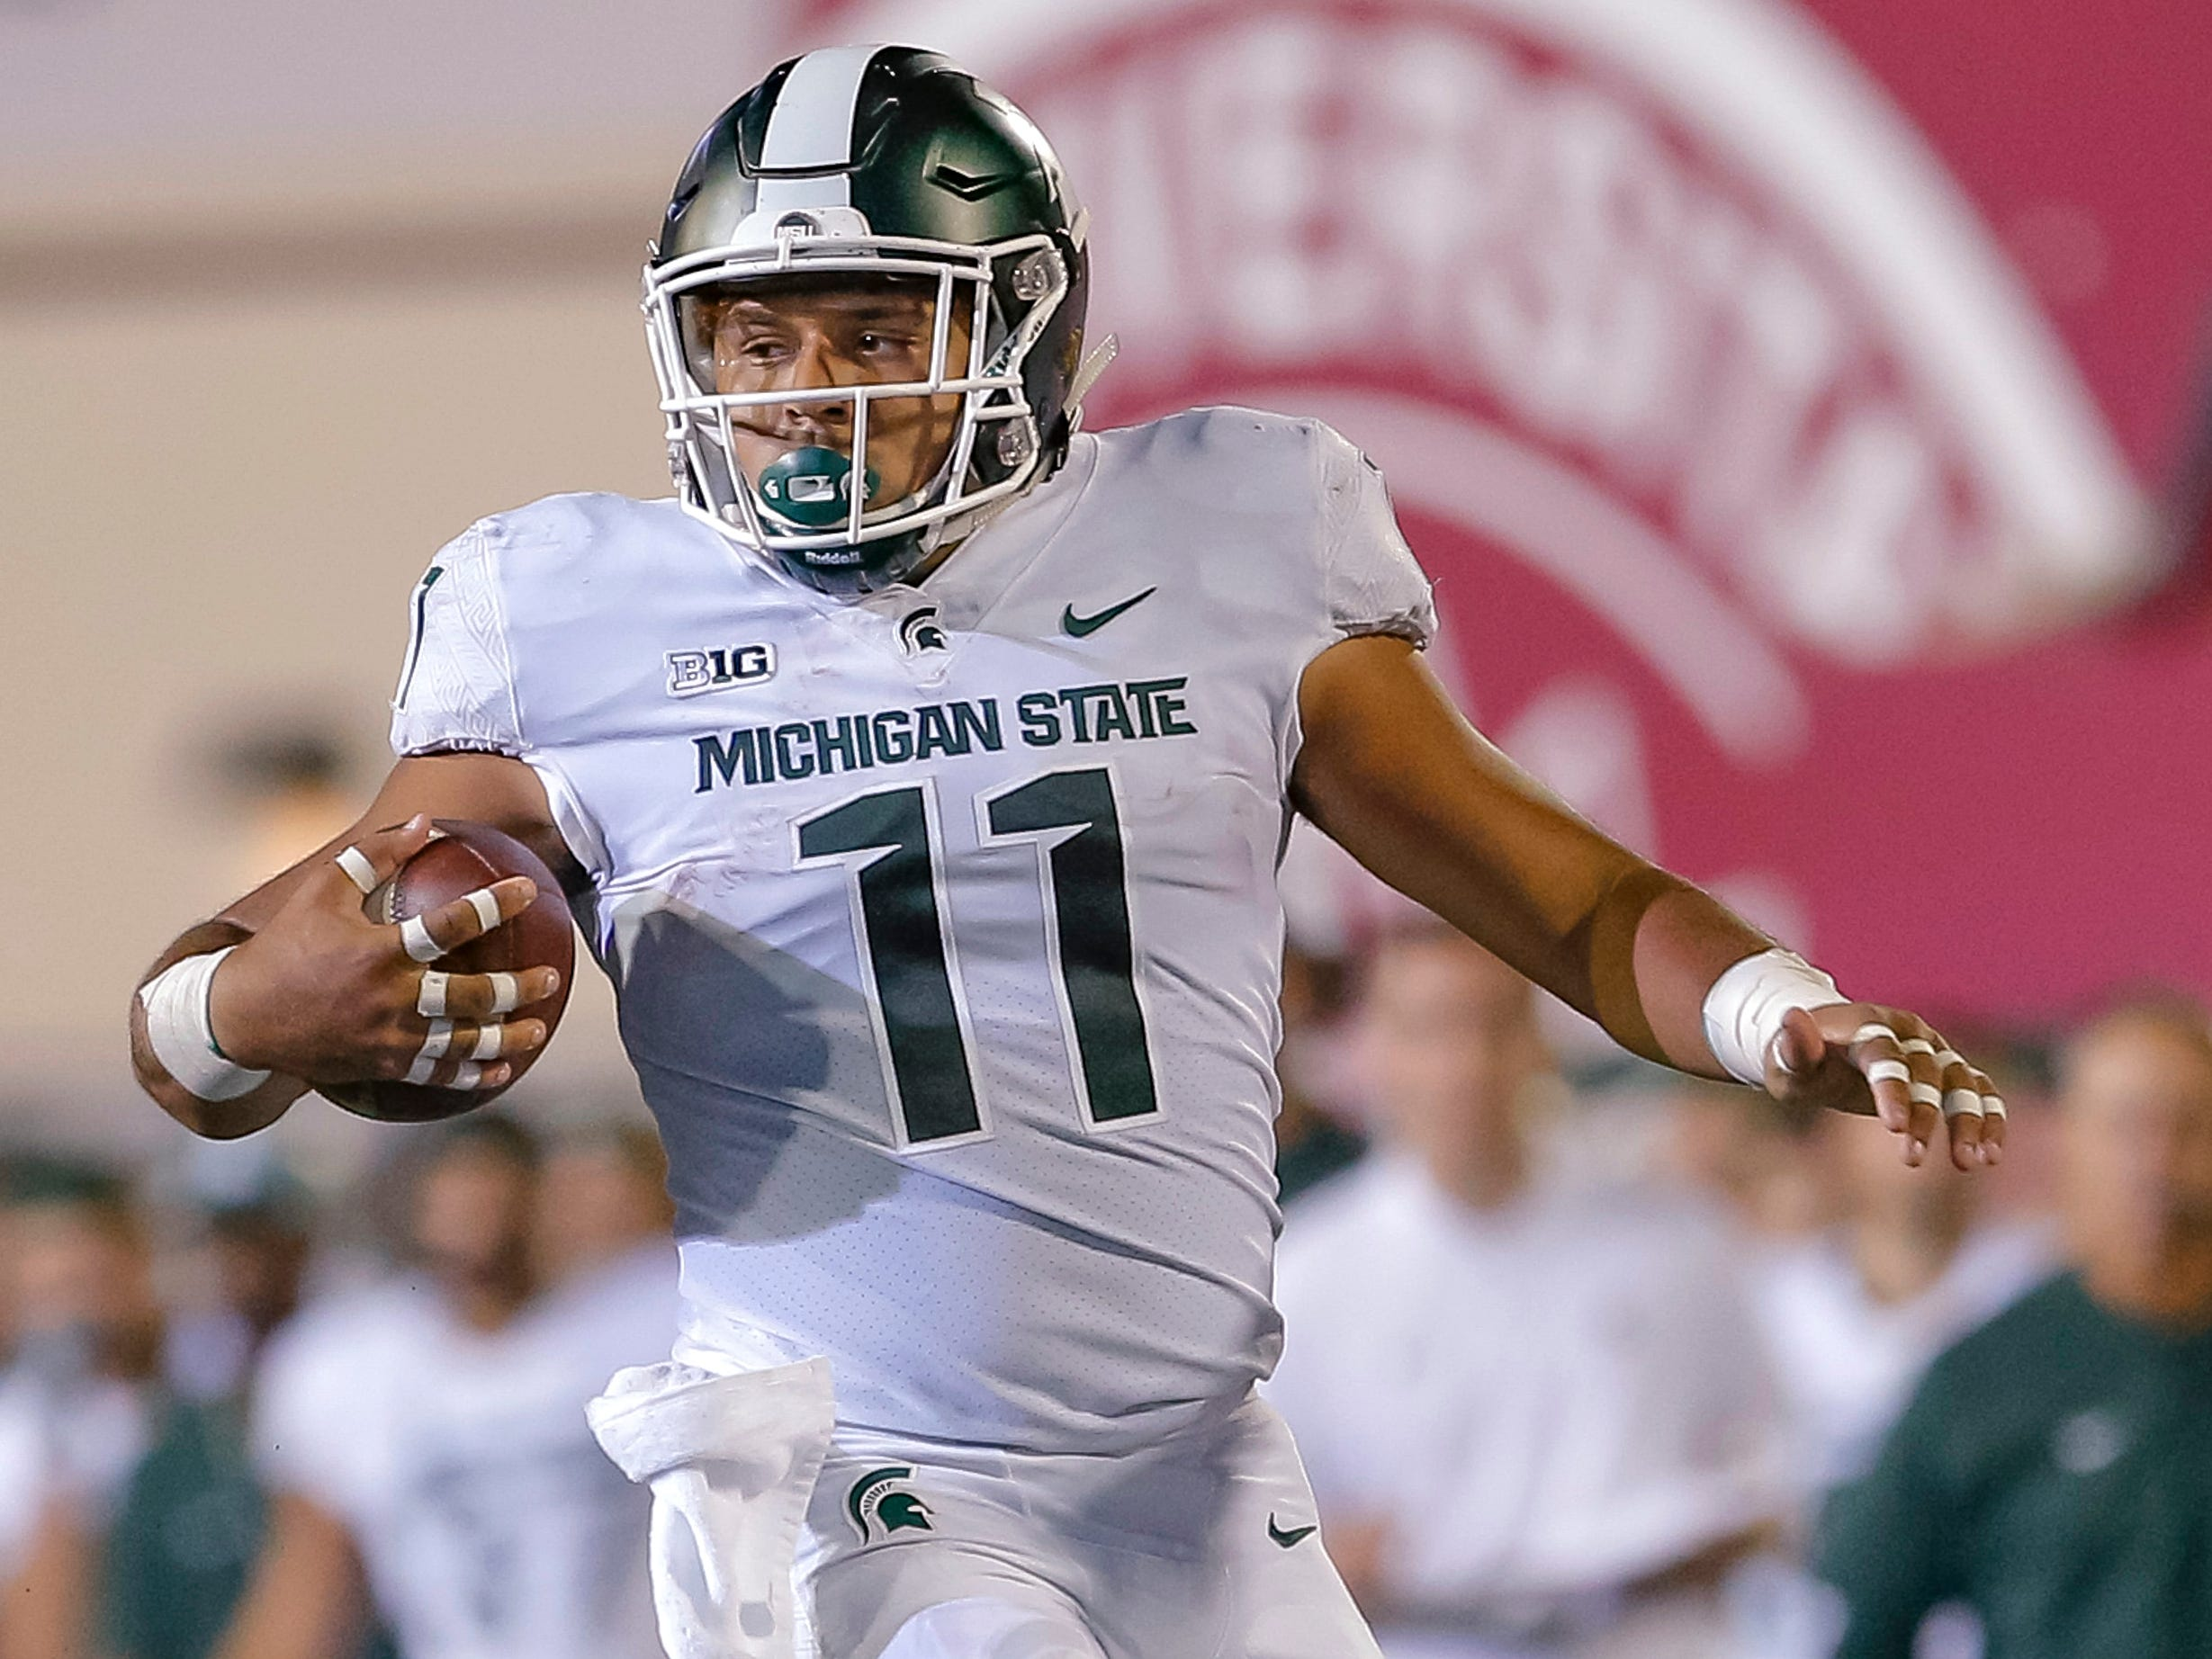 Connor Heyward #11 of the Michigan State Spartans pulls up while rushing during the game against the Indiana Hoosiers at Memorial Stadium on September 22, 2018 in Bloomington, Indiana.